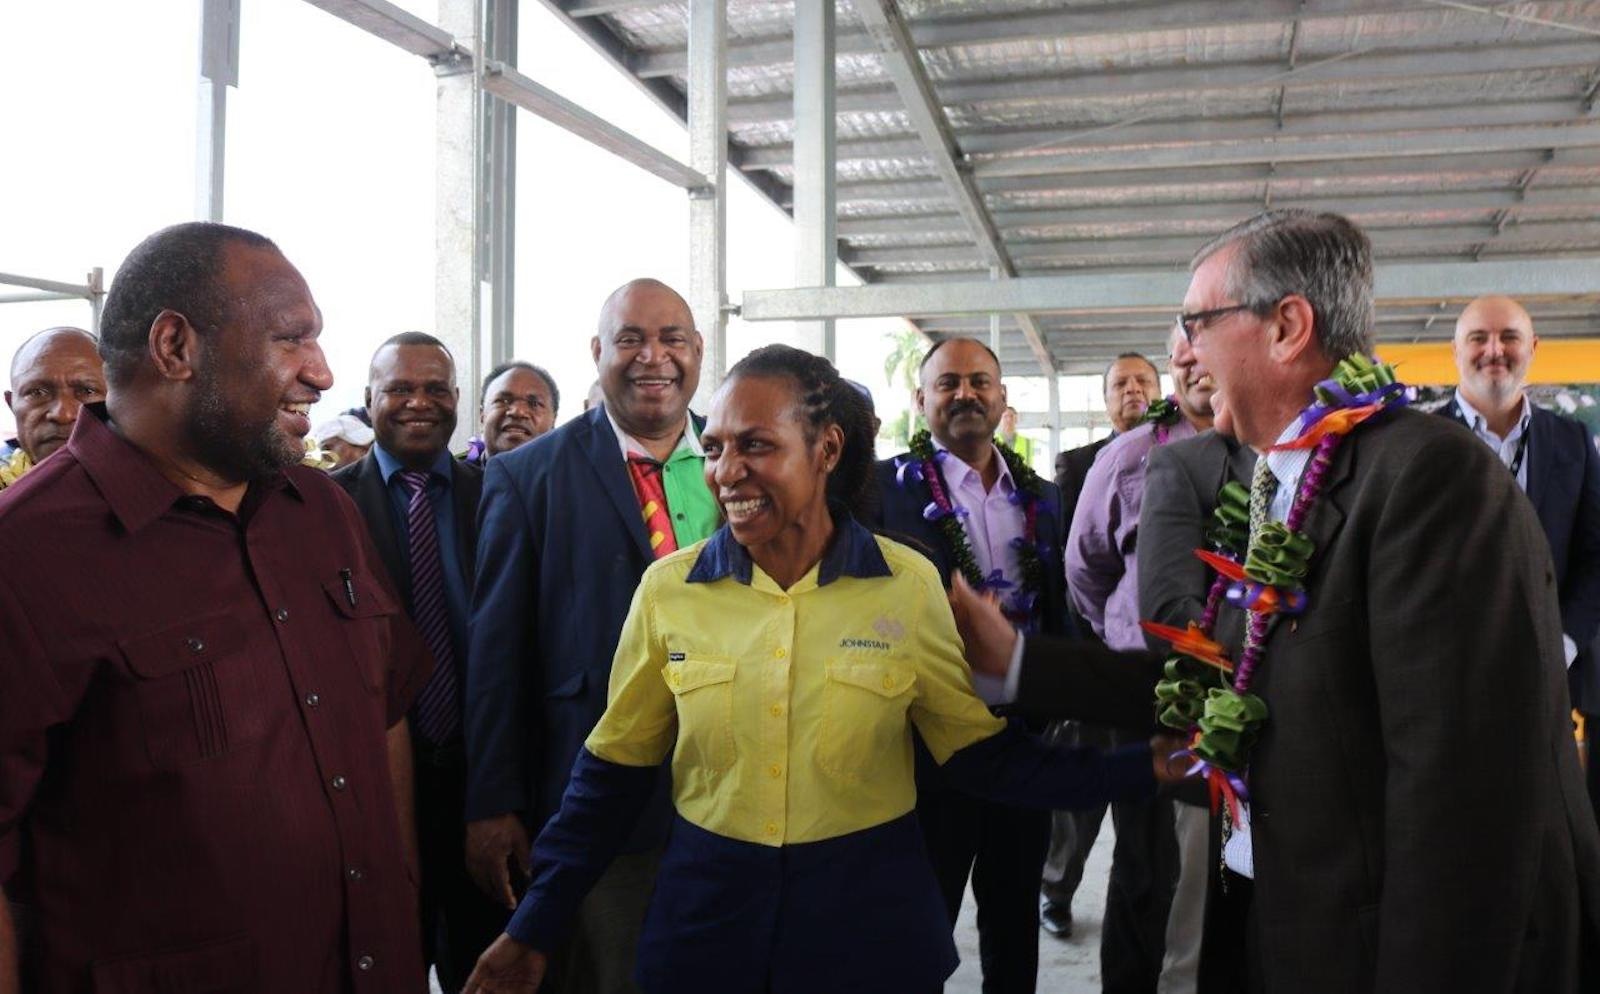 Women show themselves as leaders in PNG's development despite a lack of reflection in politics. Melinda Kanamon briefs on the Angau Redevelopment Project to PM James Marape and Australian High Commissioner Bruce Davis (Photo: Johnstaff International)